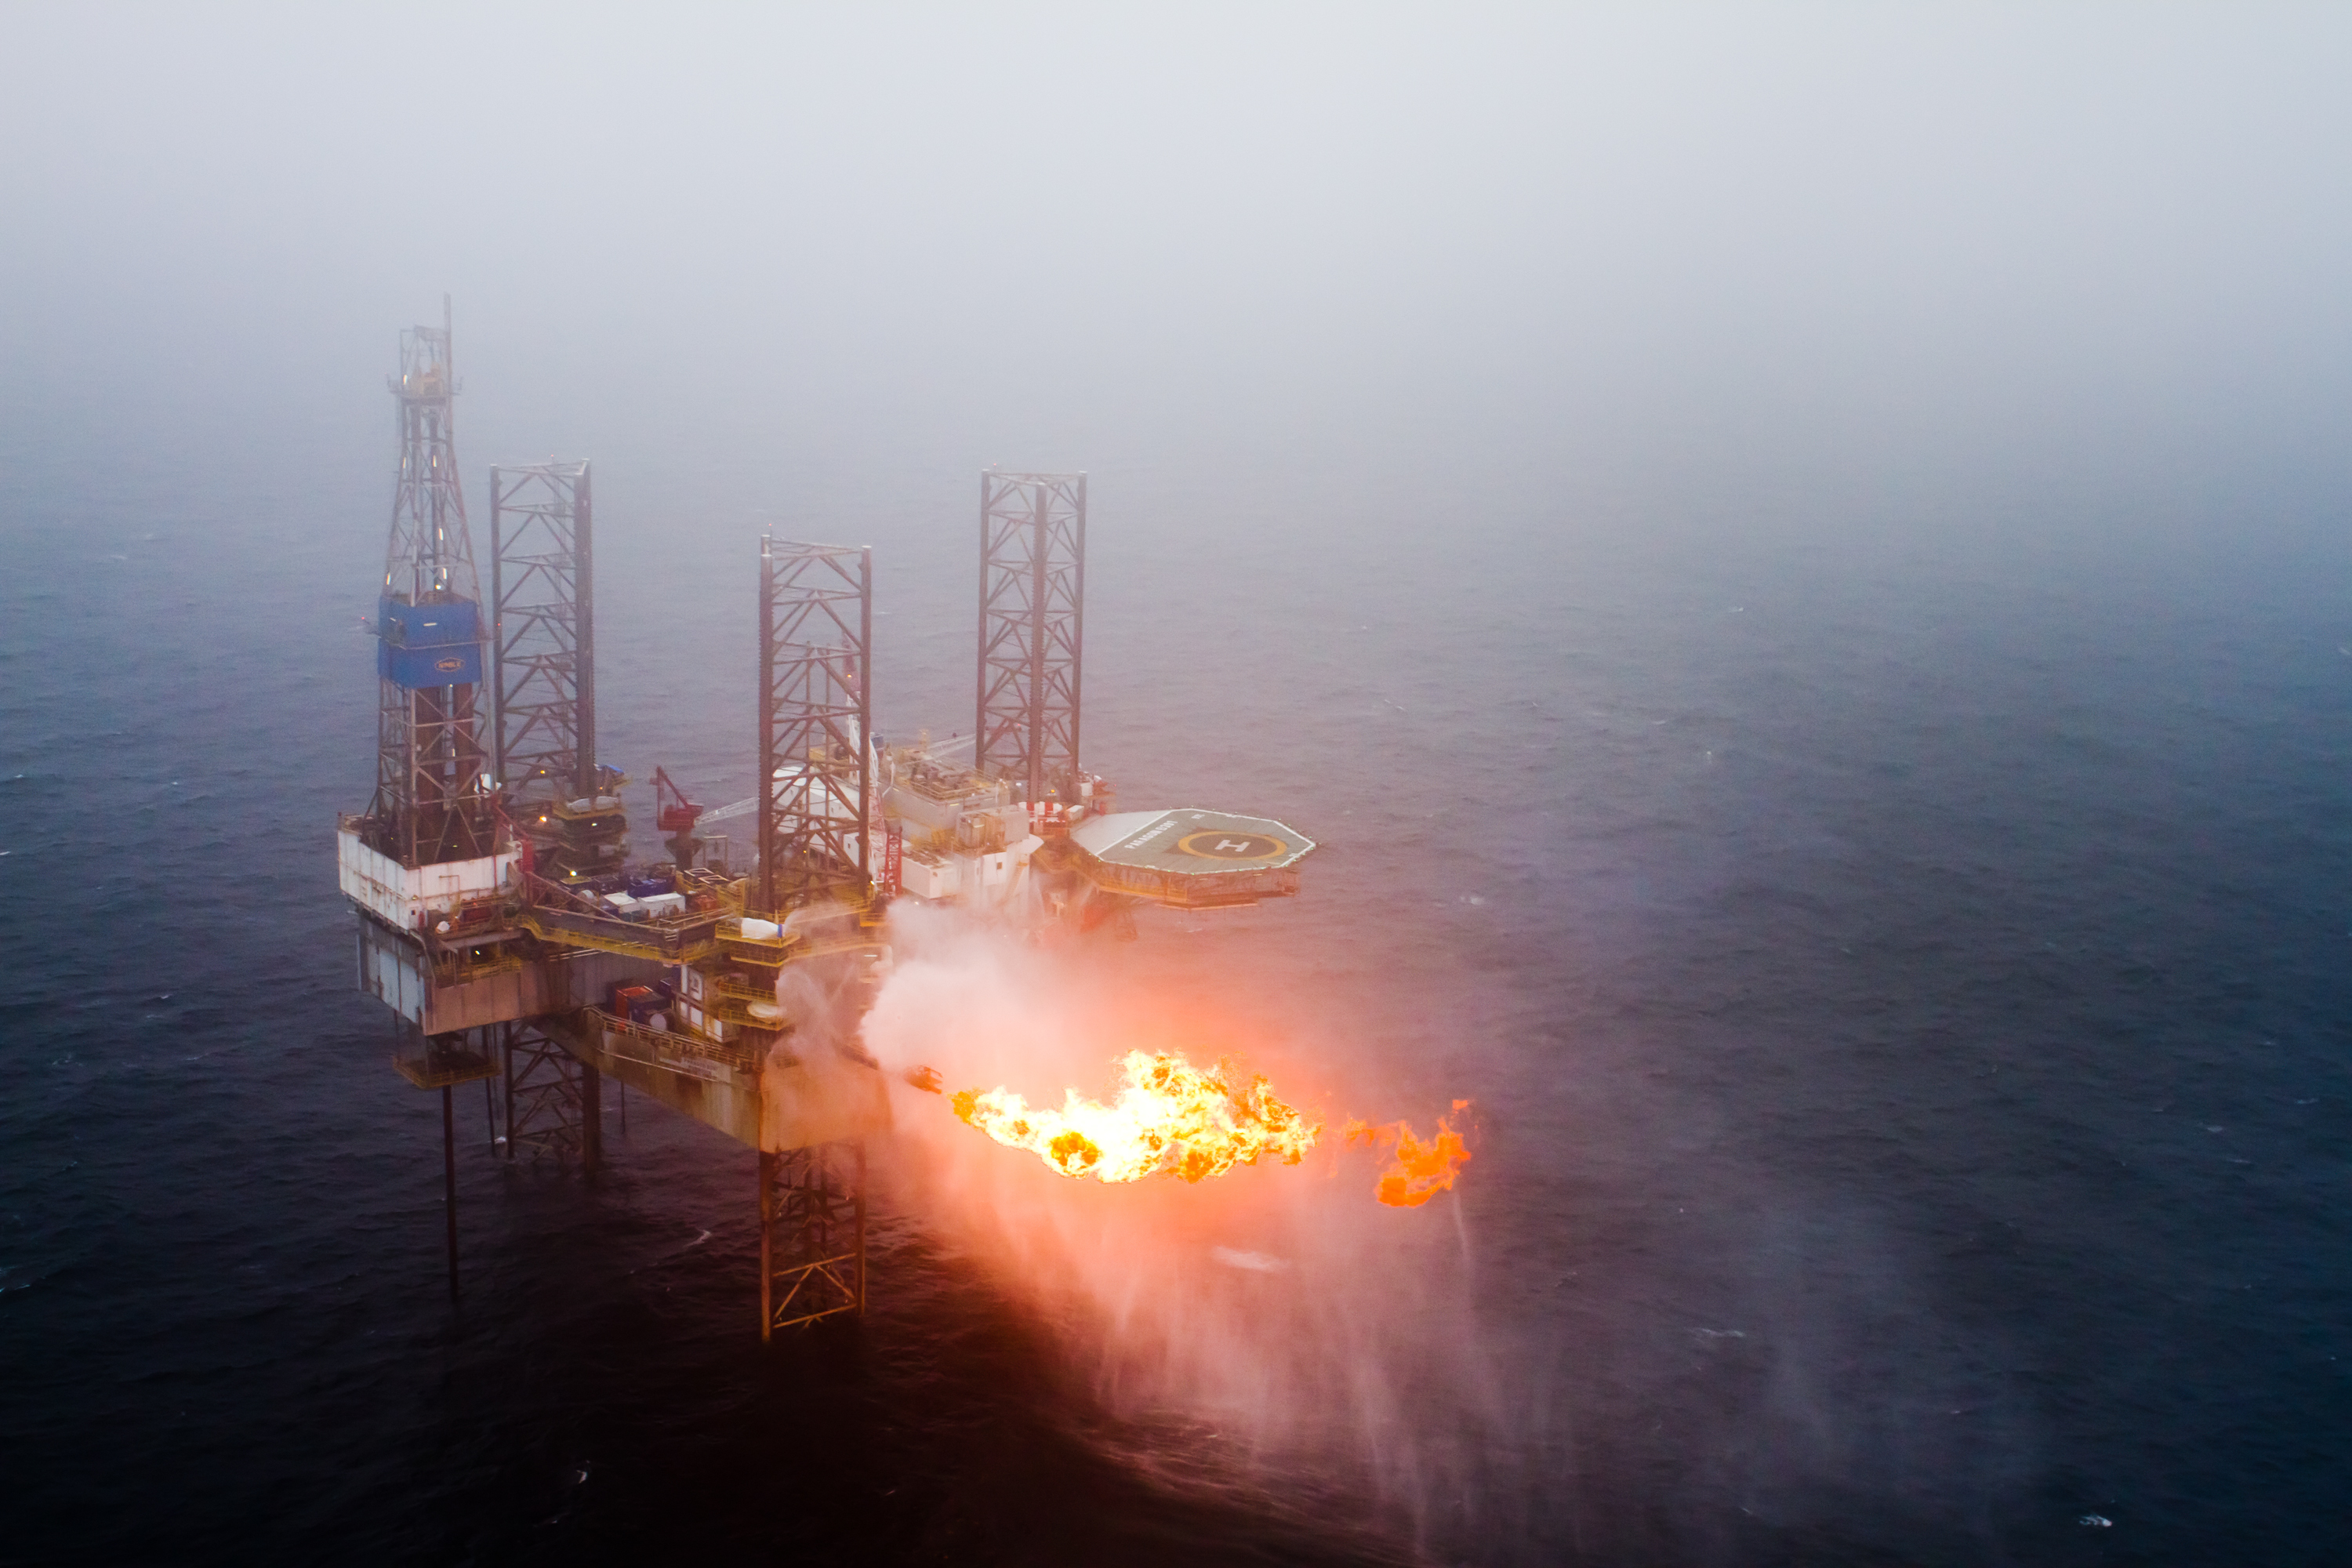 Borr Drilling's 391 jack-up rig, formerly owned by Paragon, struck gas on Pegasus West in 2014.